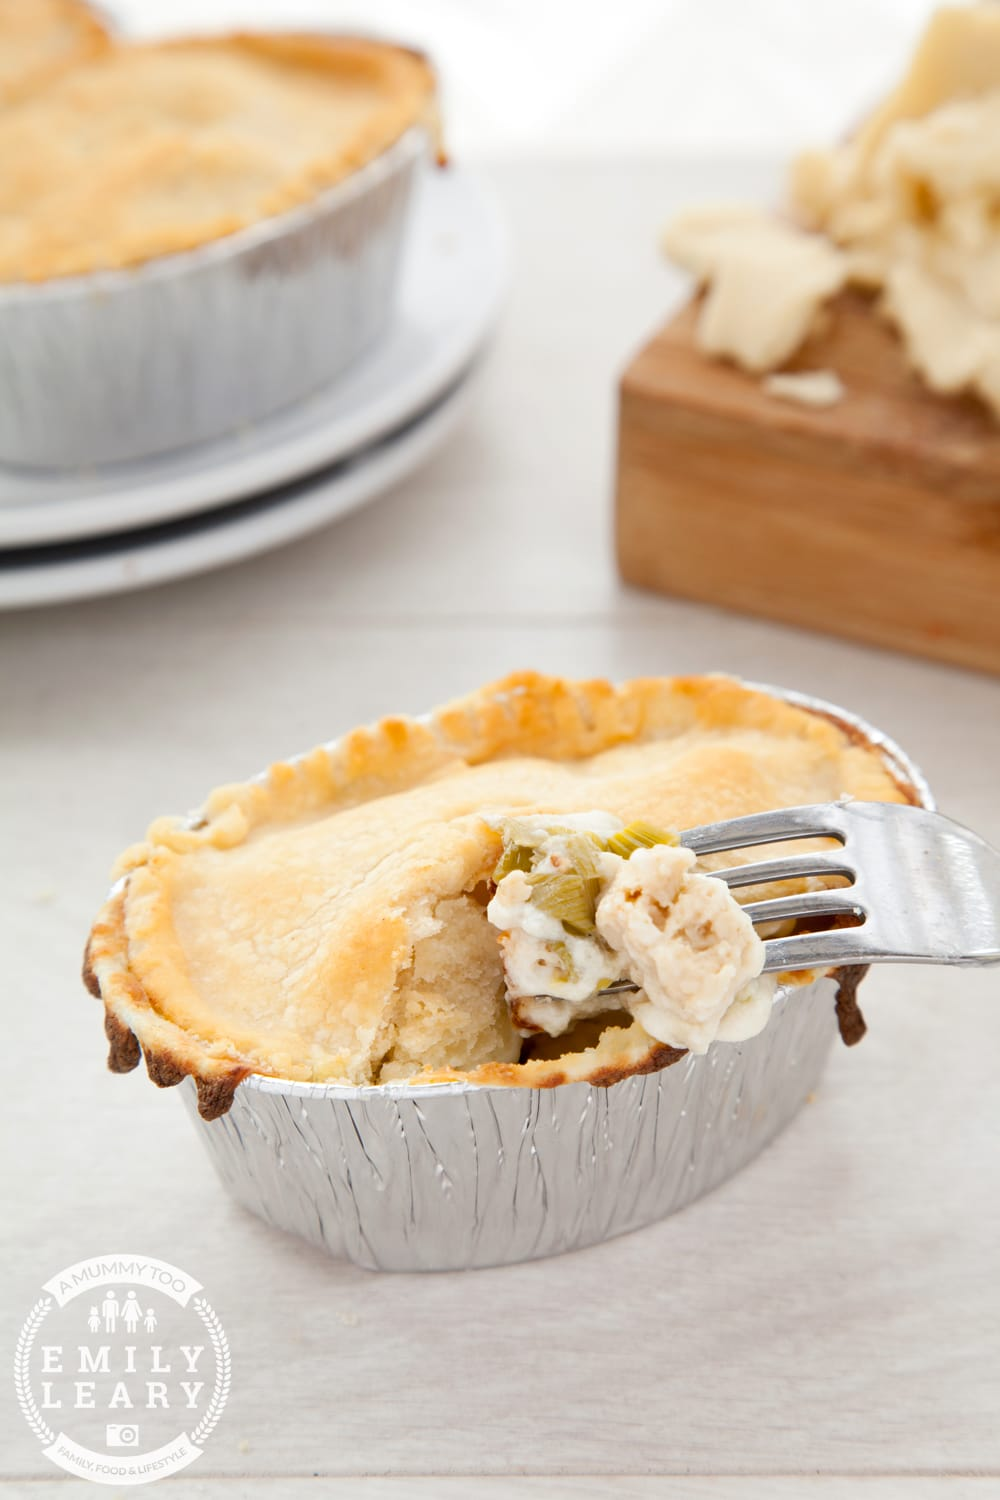 Gluten-free, vegetarian pot pies with chicken-style pieces, leeks, peas and a creamy sauce - delicious!